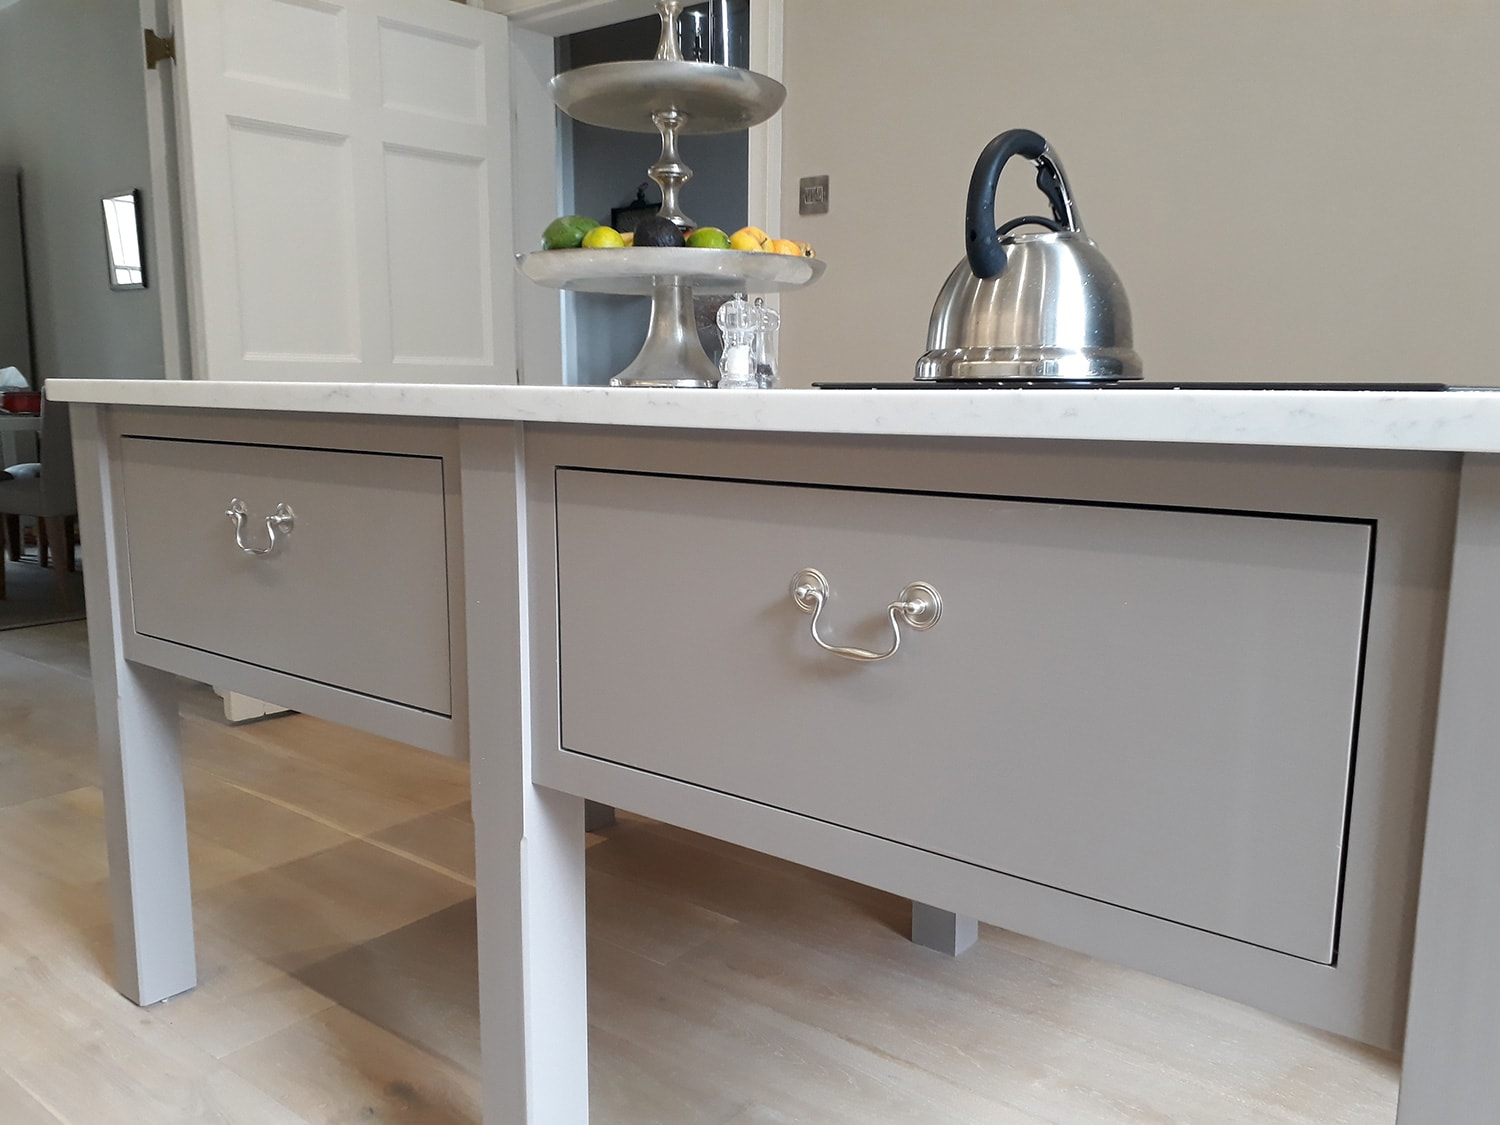 A bespoke kitchen design with cupboards and furniture